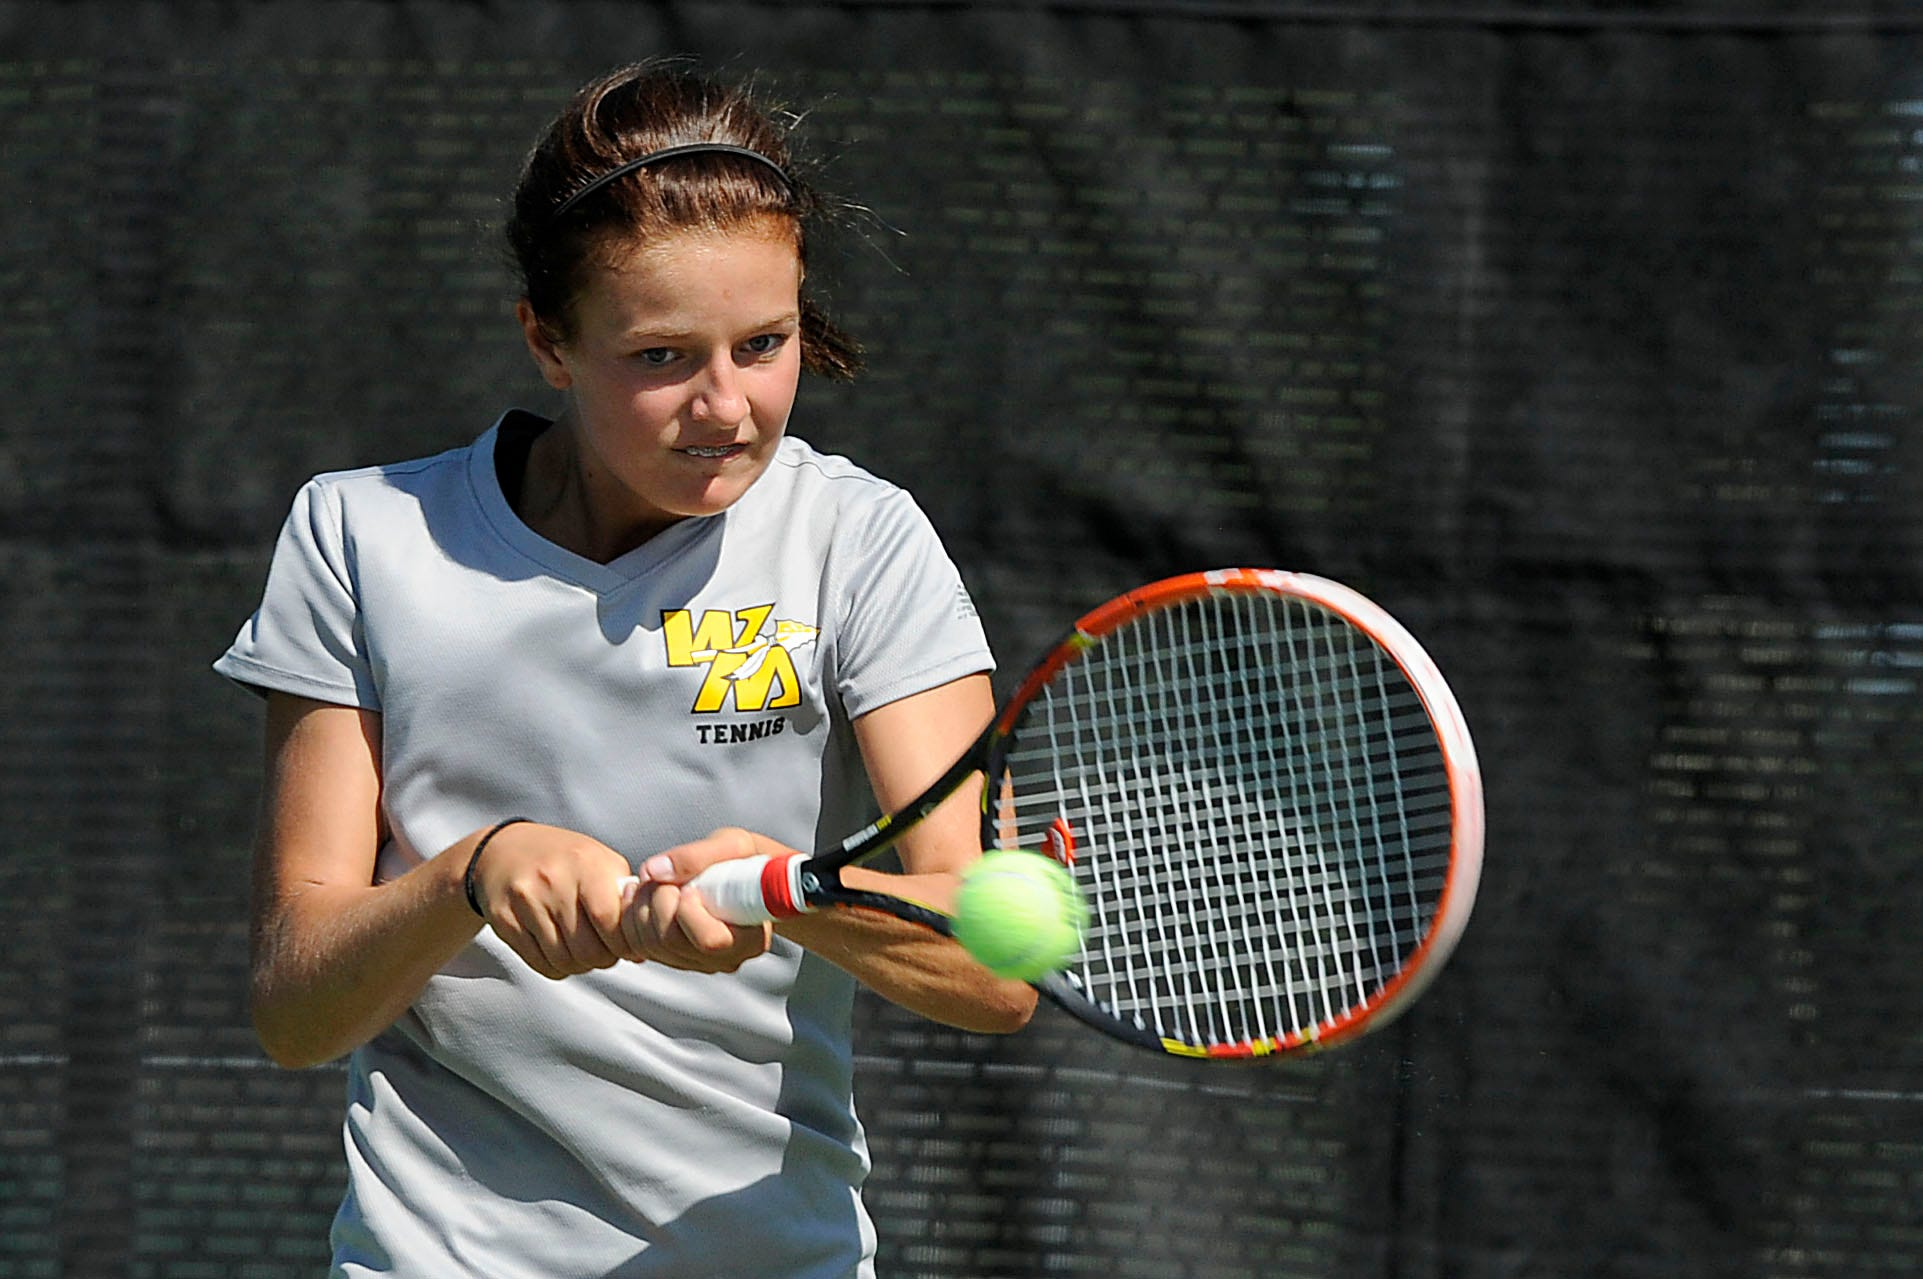 Watkins Memorial's Alexis Steer hits a ball to Granville's Charlotte Purnode in a No. 1 singles match during Saturday's Licking County tournament at Denison. Steer won both of her matches.